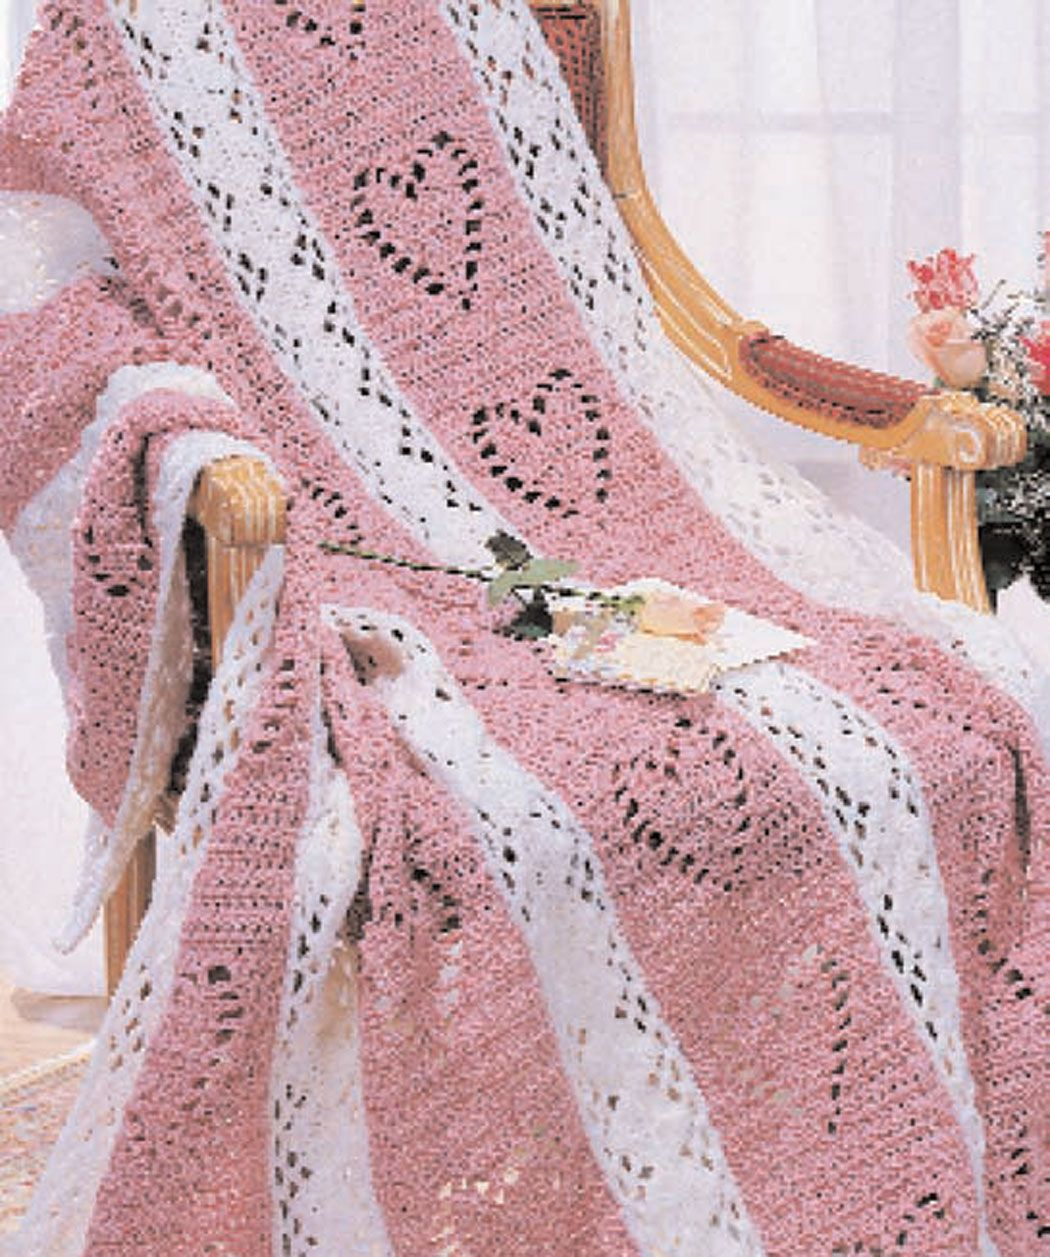 Hearts diamonds how pretty for a little girl or for a wedding hearts diamonds crochet afghan free pattern worsted weight yarn medium and us and us bankloansurffo Images